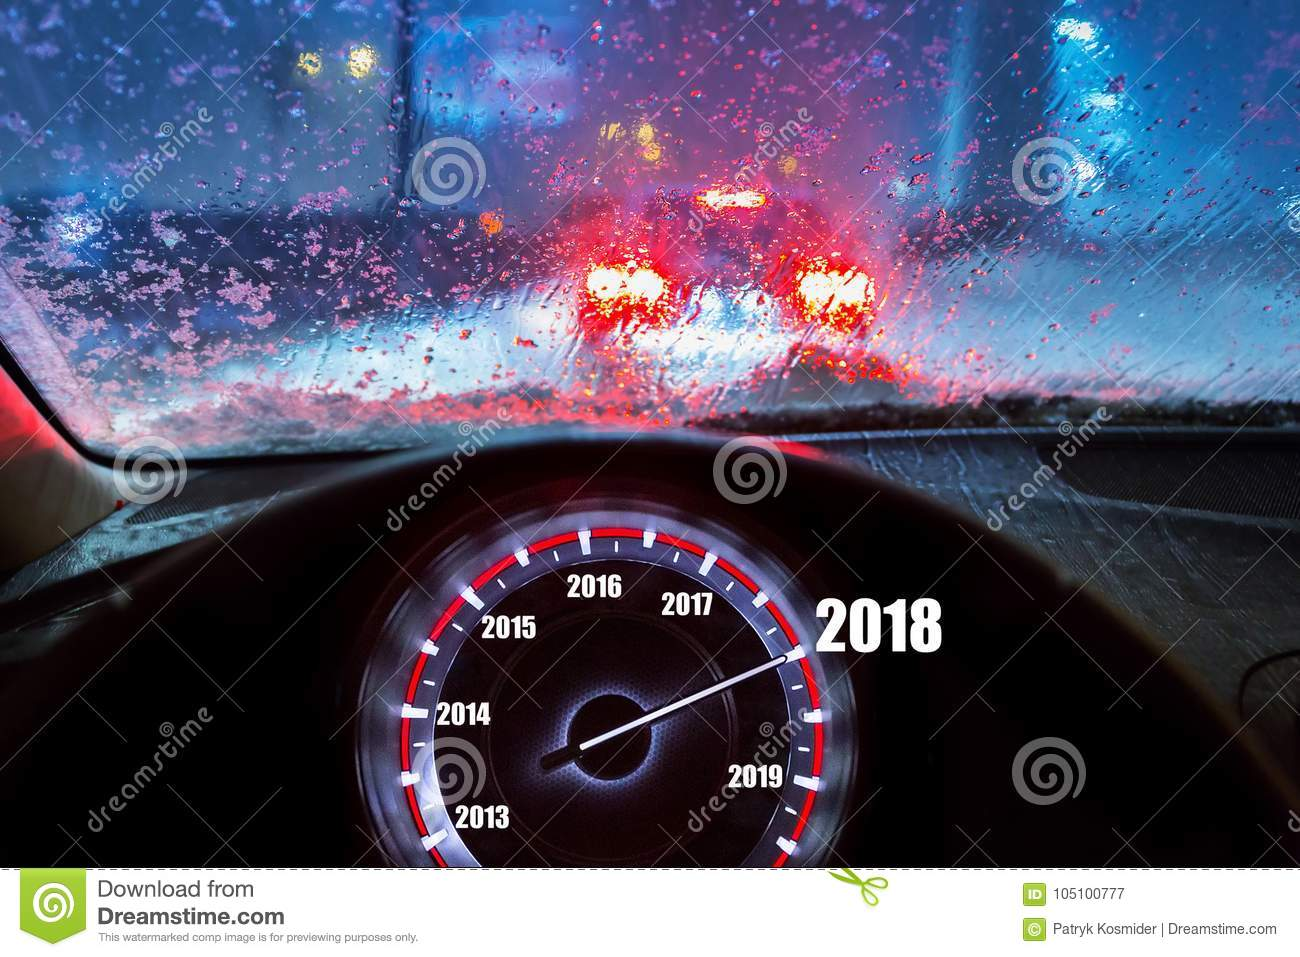 New Year 2018 in the car